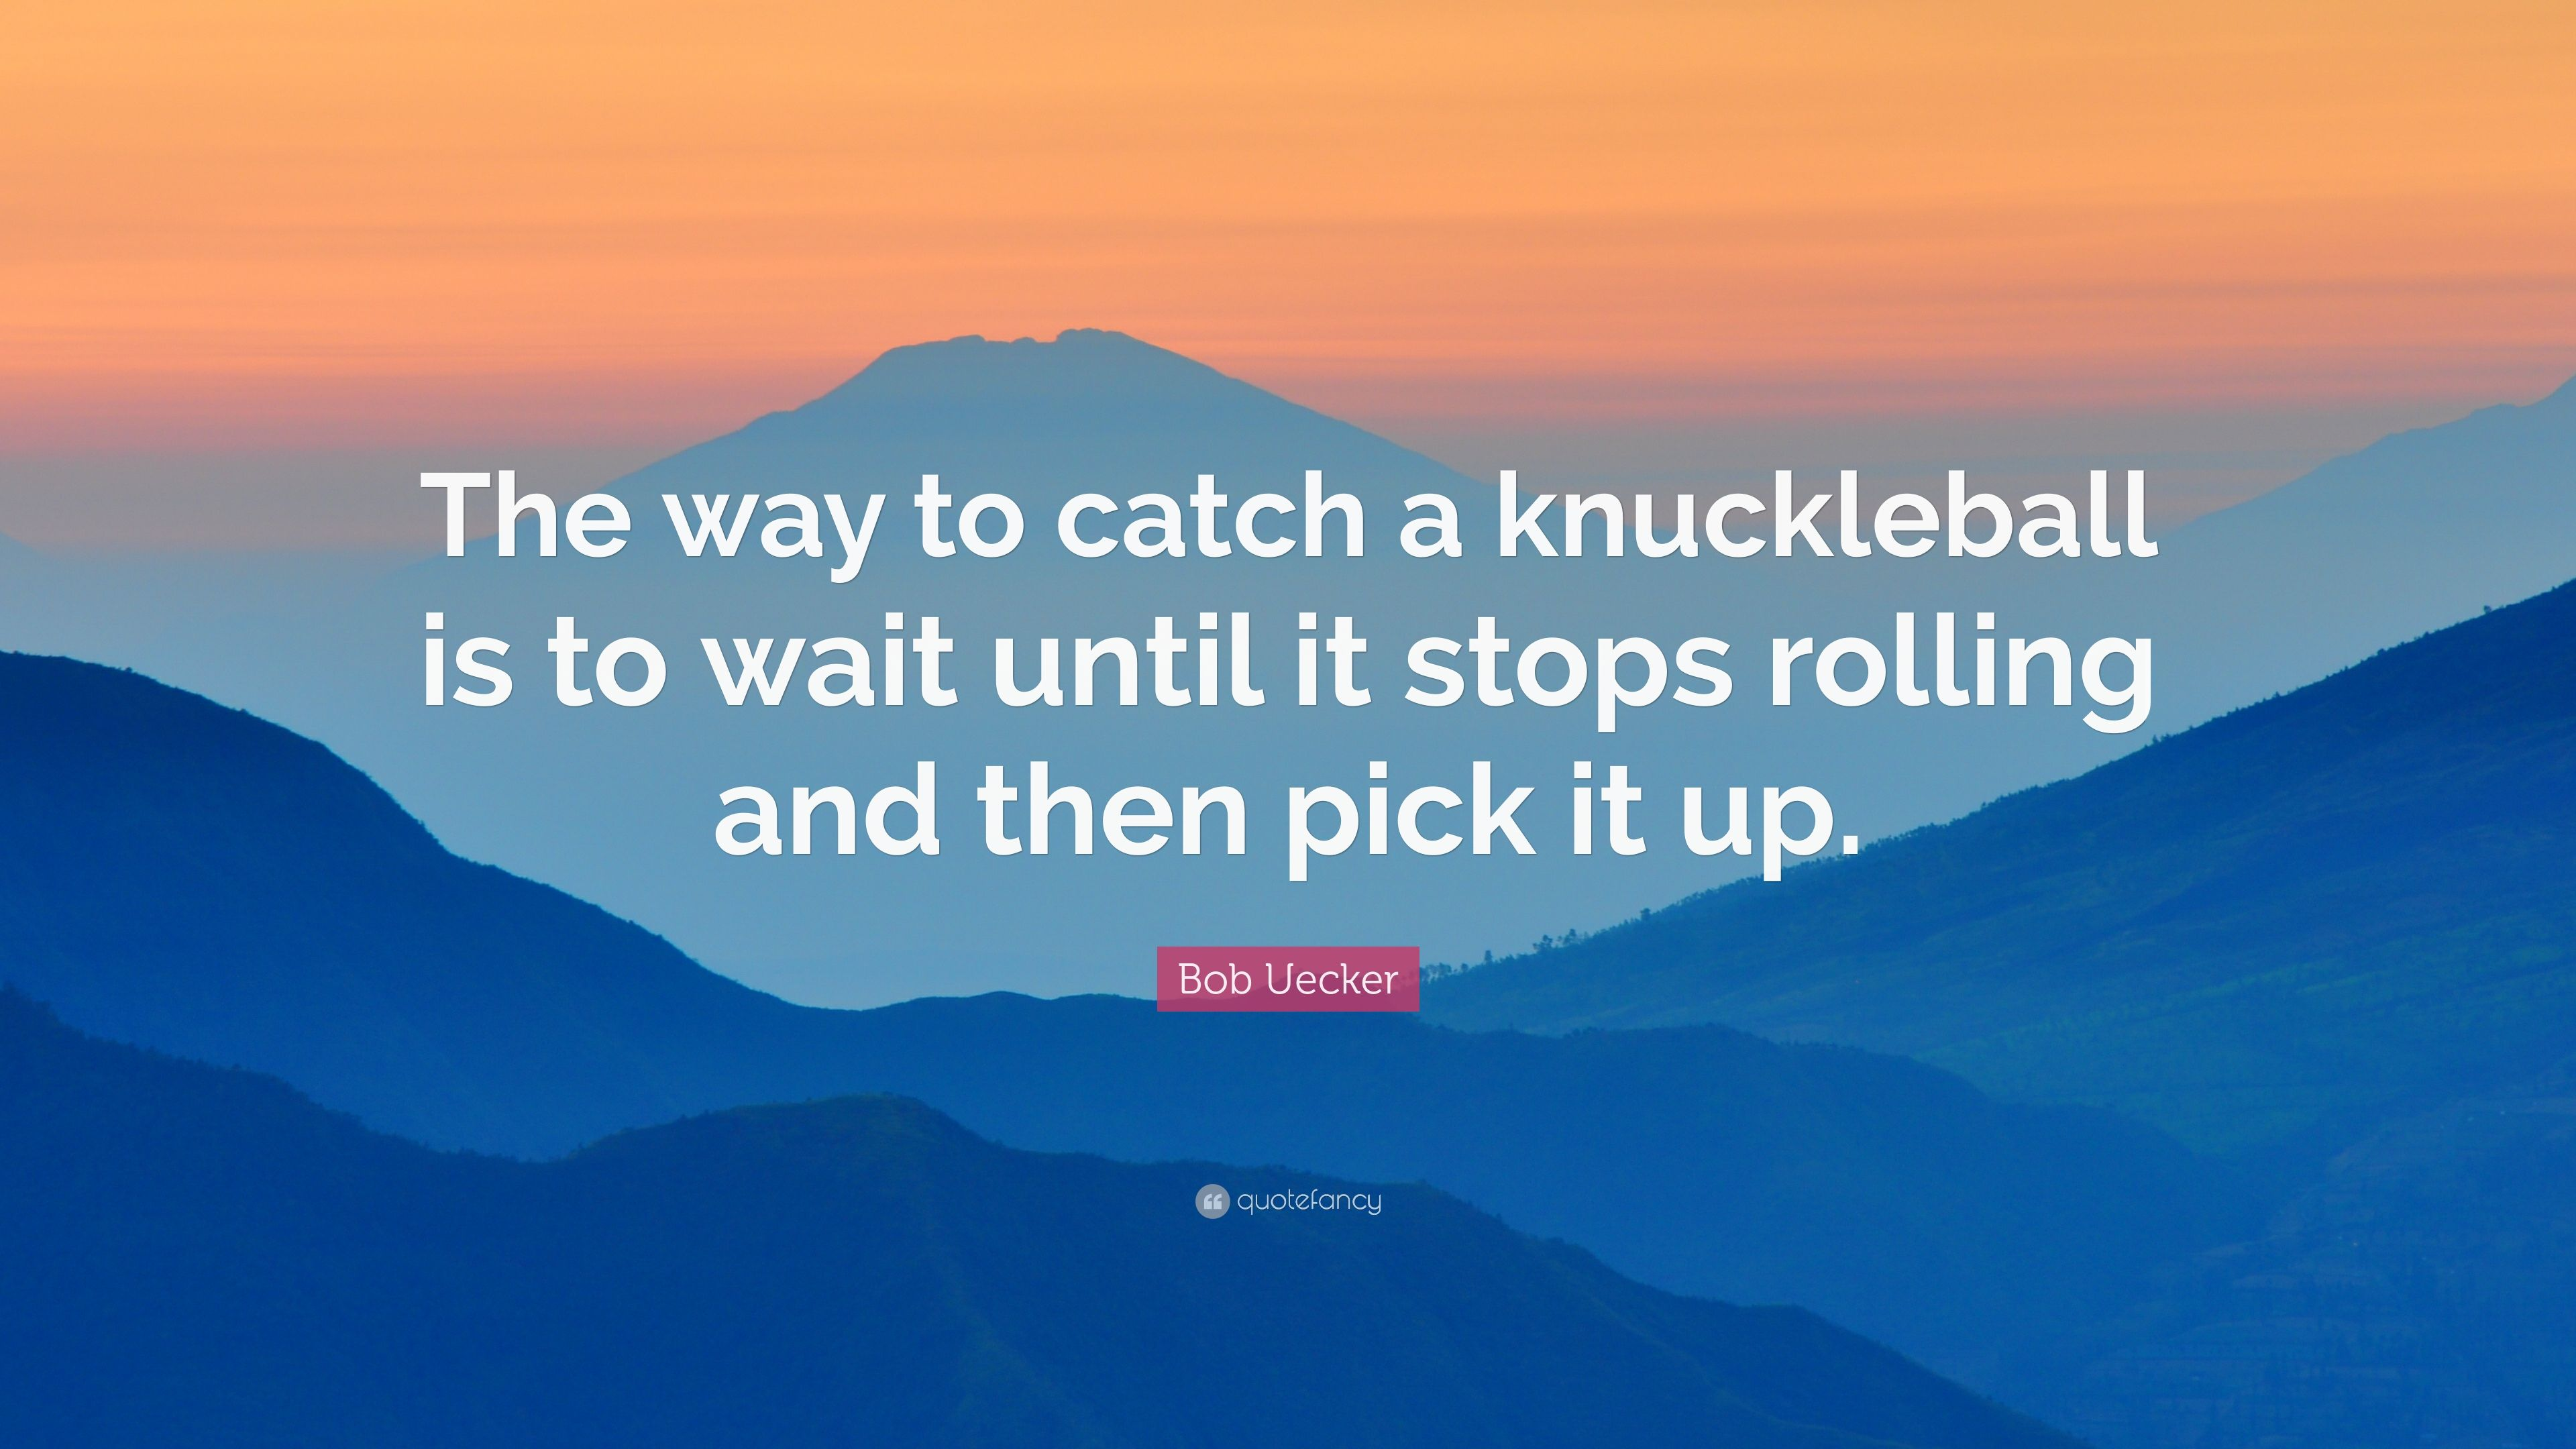 4916151-Bob-Uecker-Quote-The-way-to-catch-a-knuckleball-is-to-wait-until.jpg